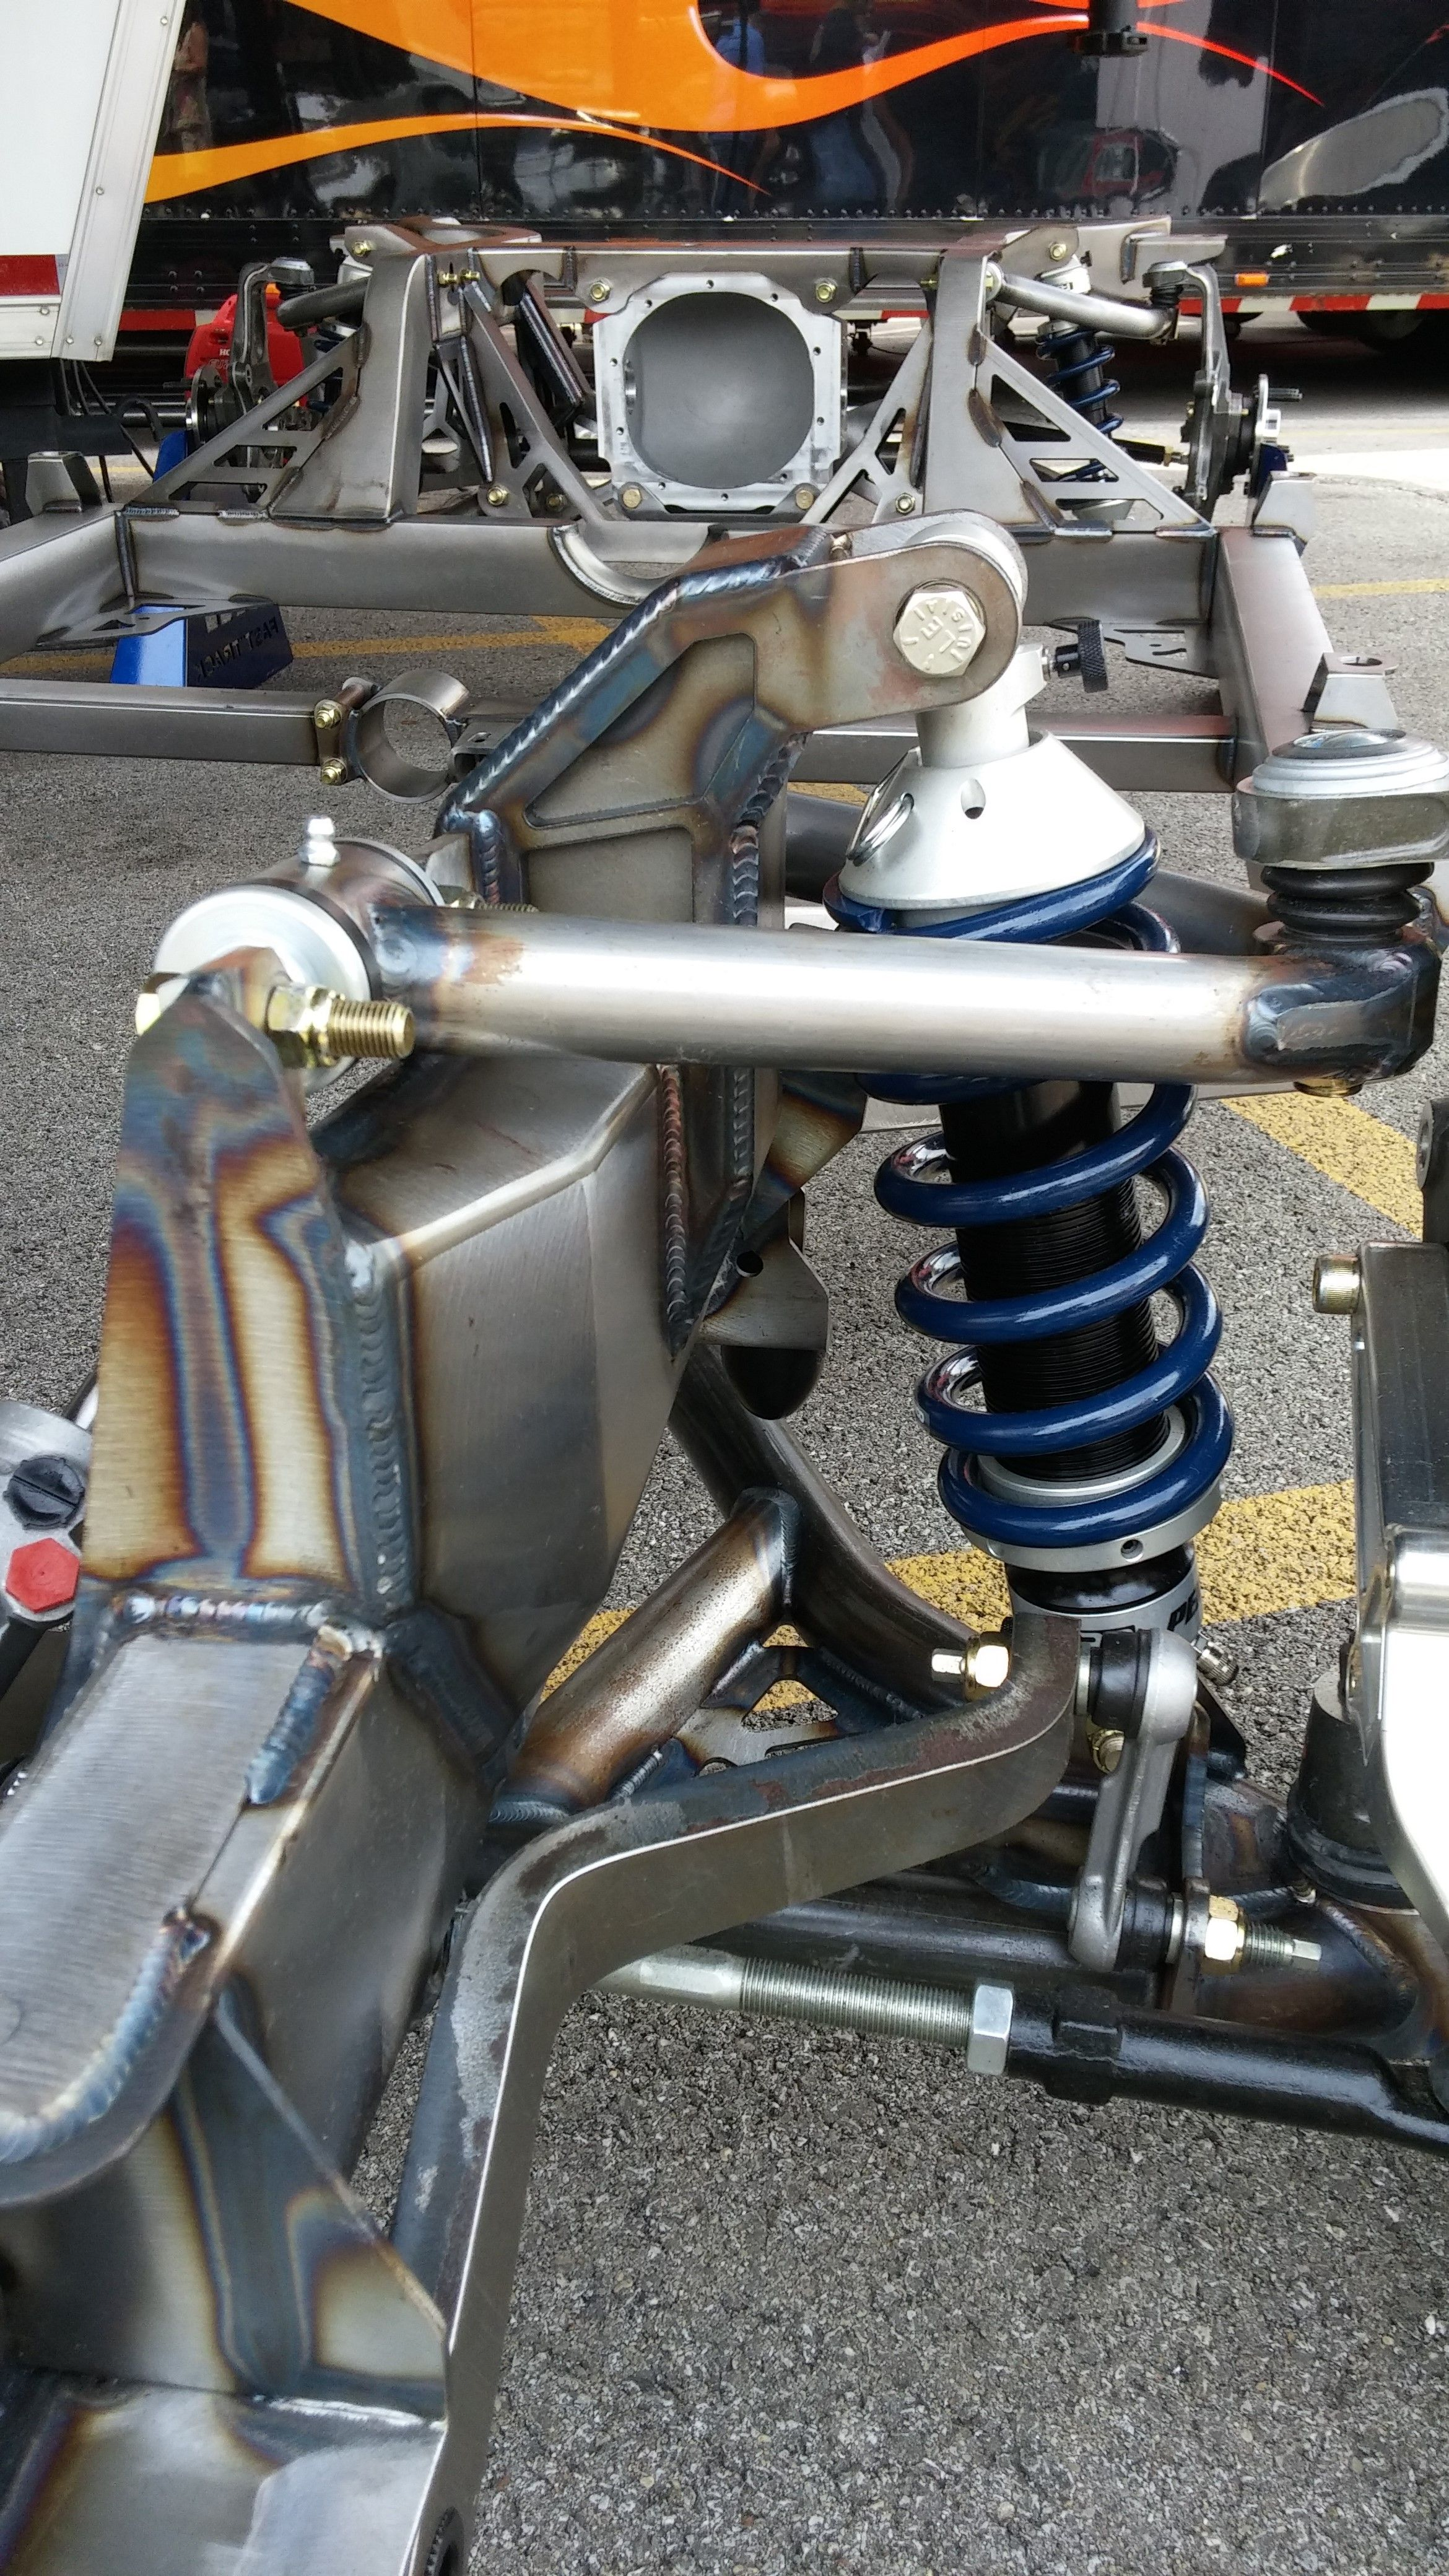 medium resolution of tog welded fabricated front coil over suspension on a street rod frame 2015 goodguys rod show in columbus ohio